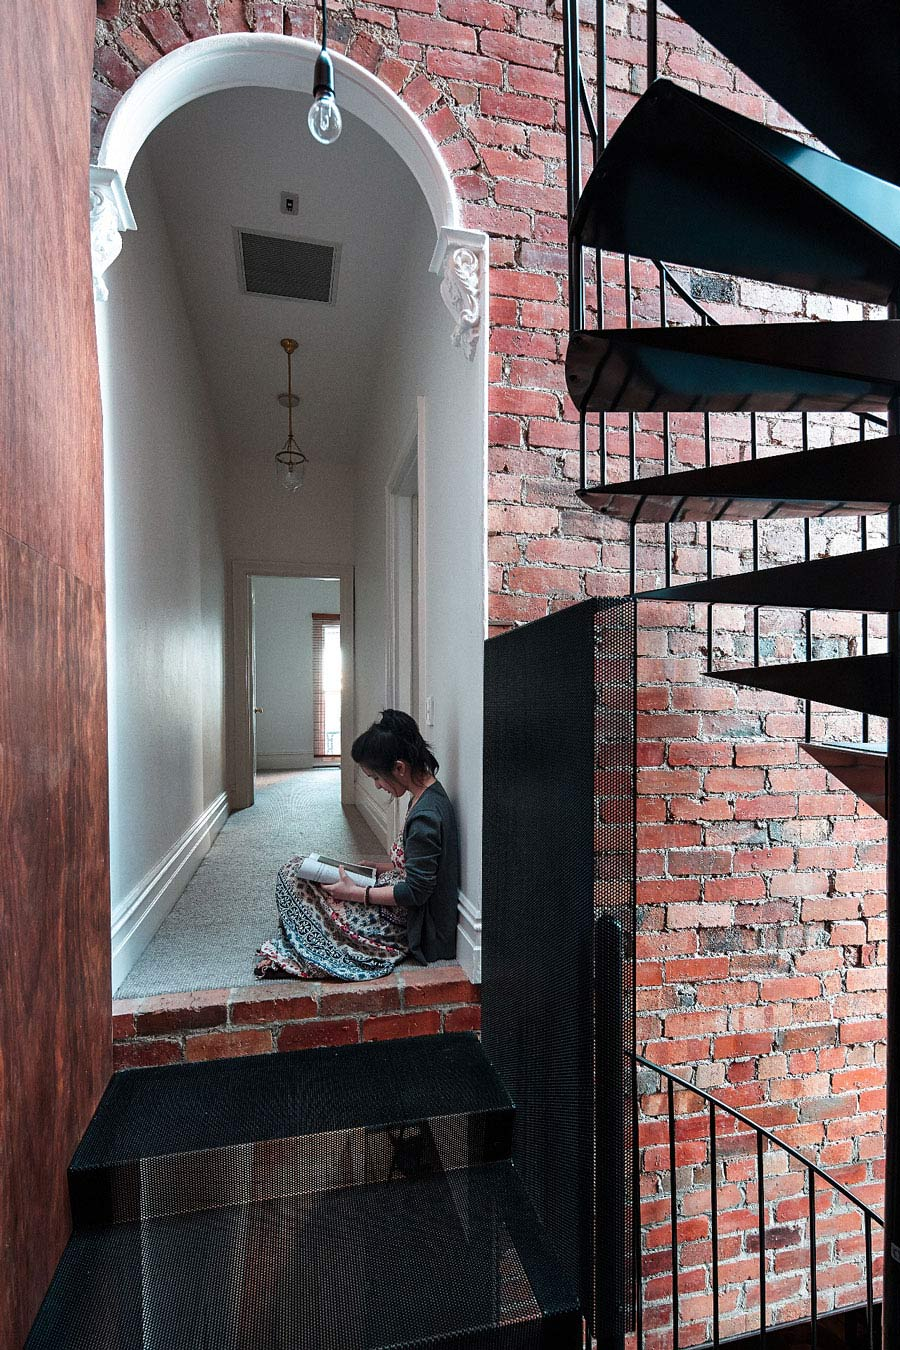 Brick Wall, Stairs, Two-Home Extension Within a Single Building in Richmond, Australia